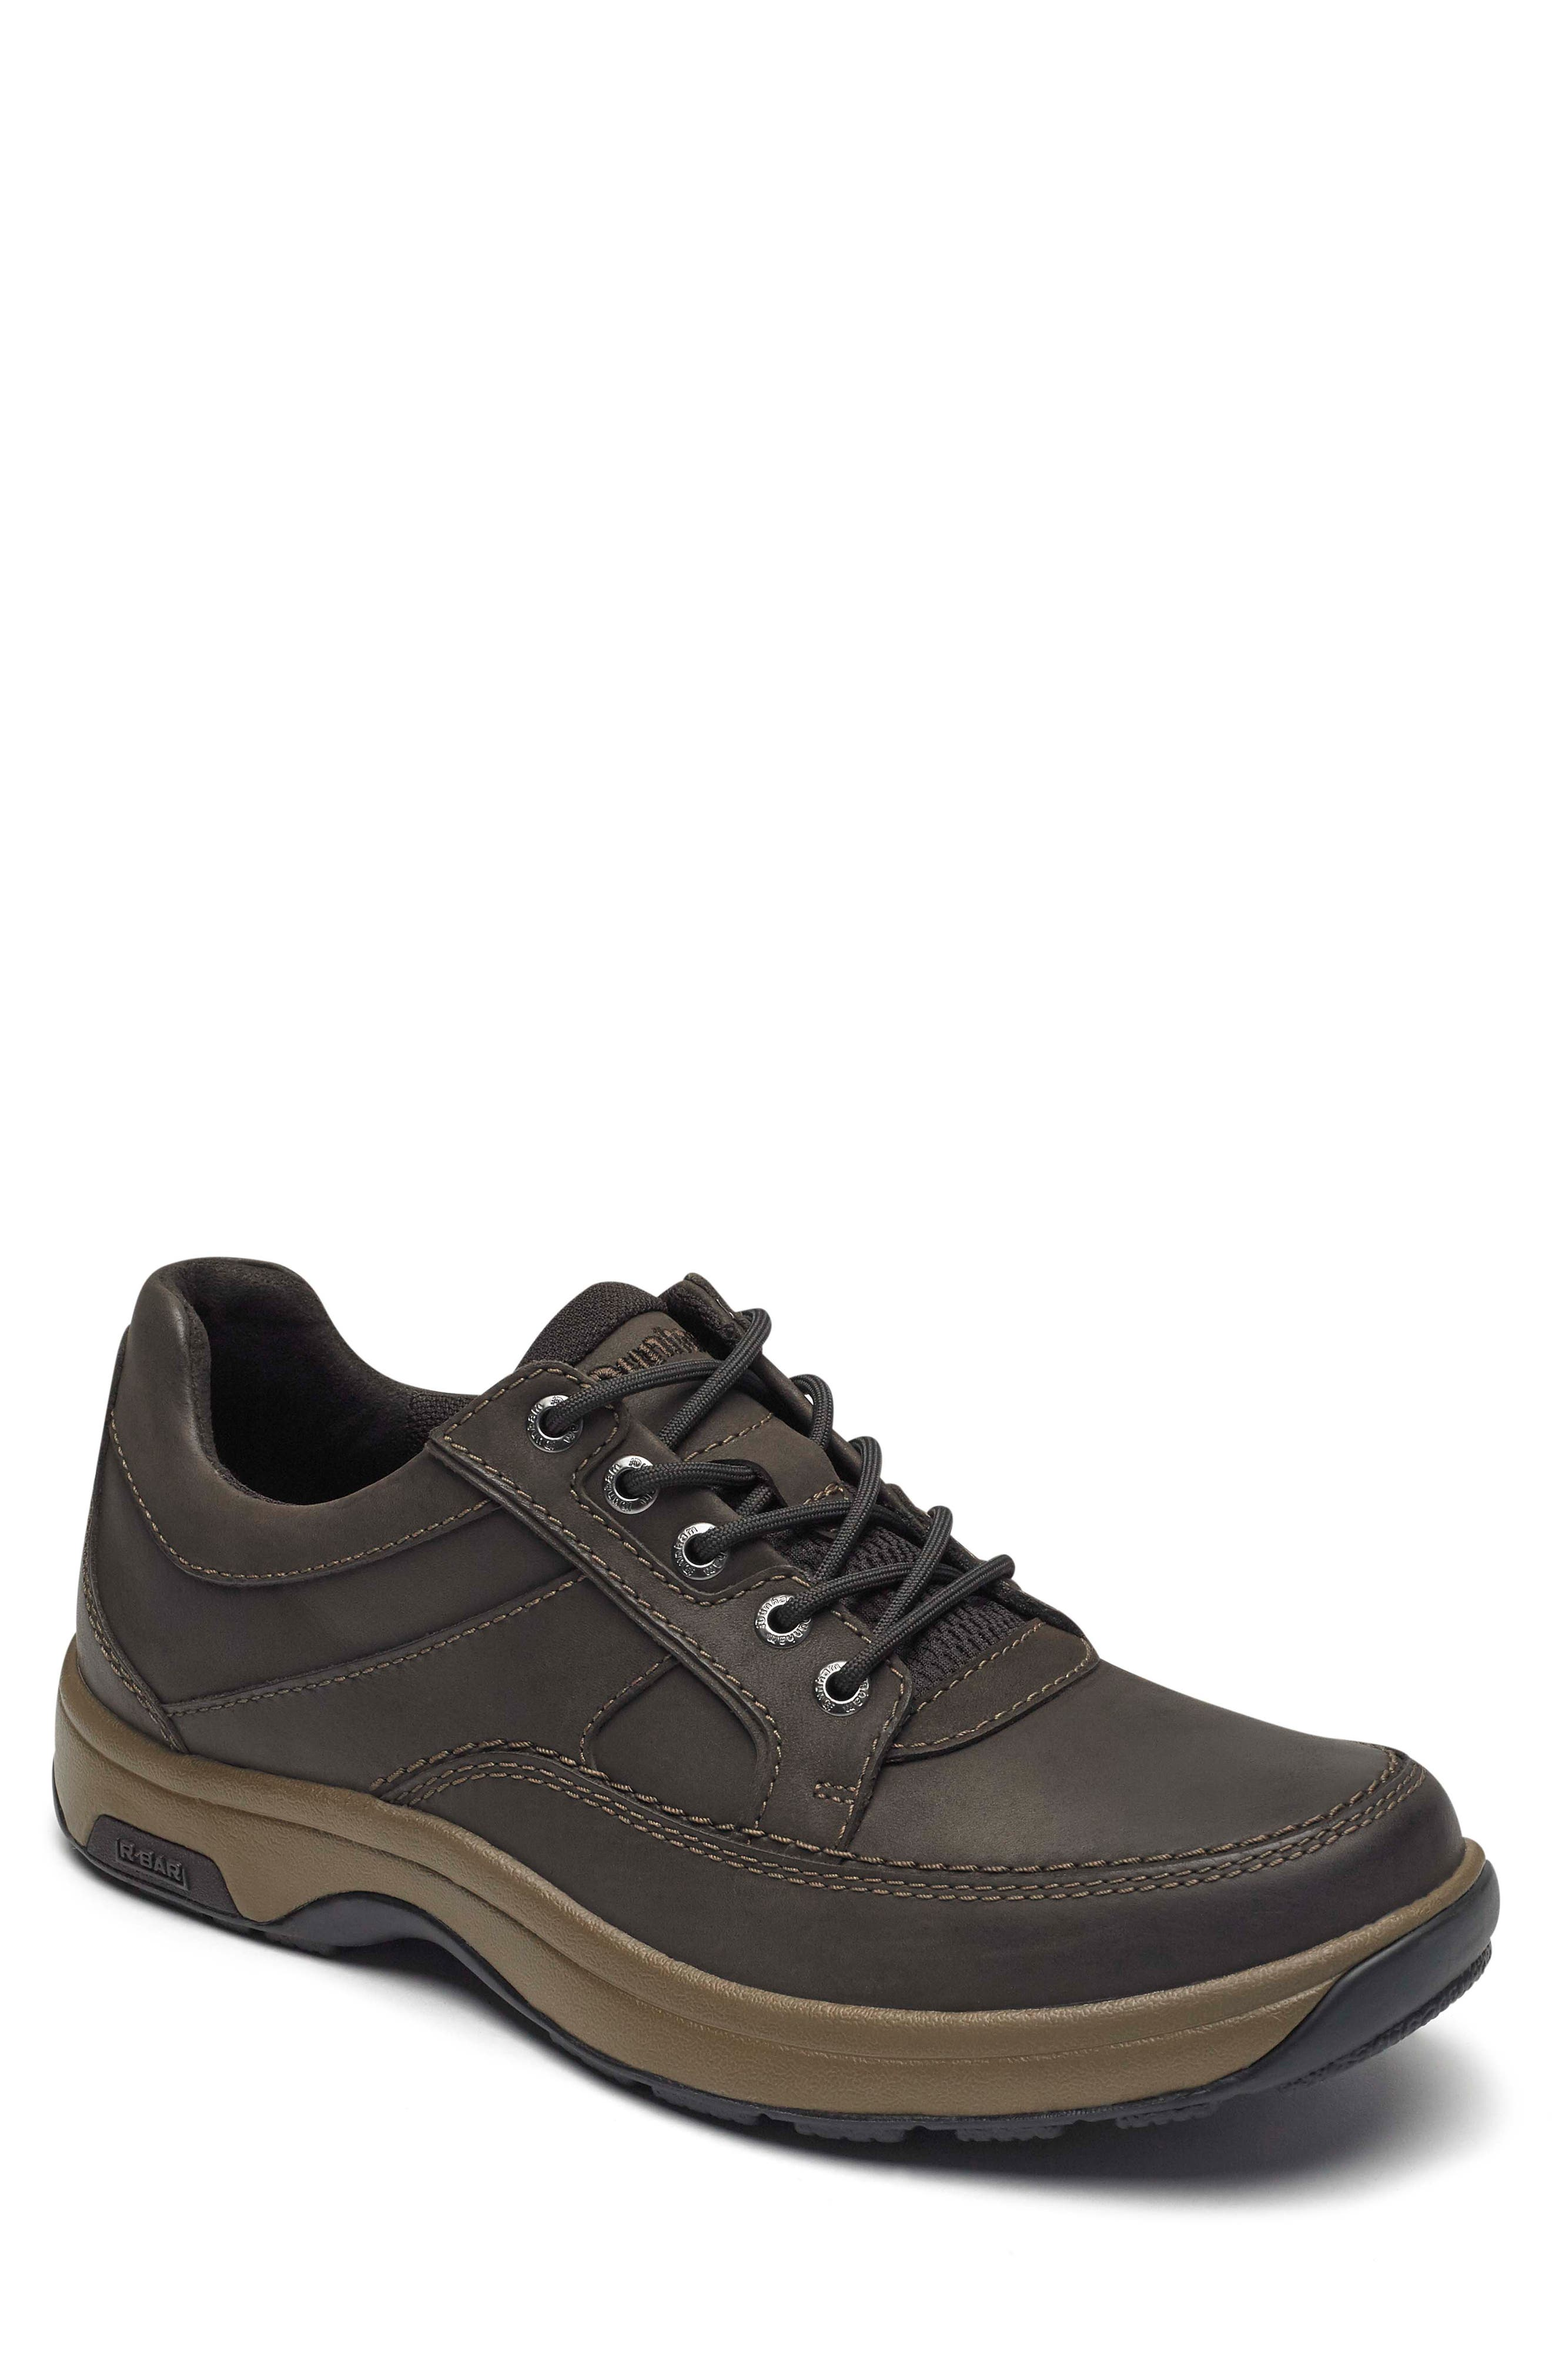 'Midland' Sneaker,                         Main,                         color, BROWN LEATHER